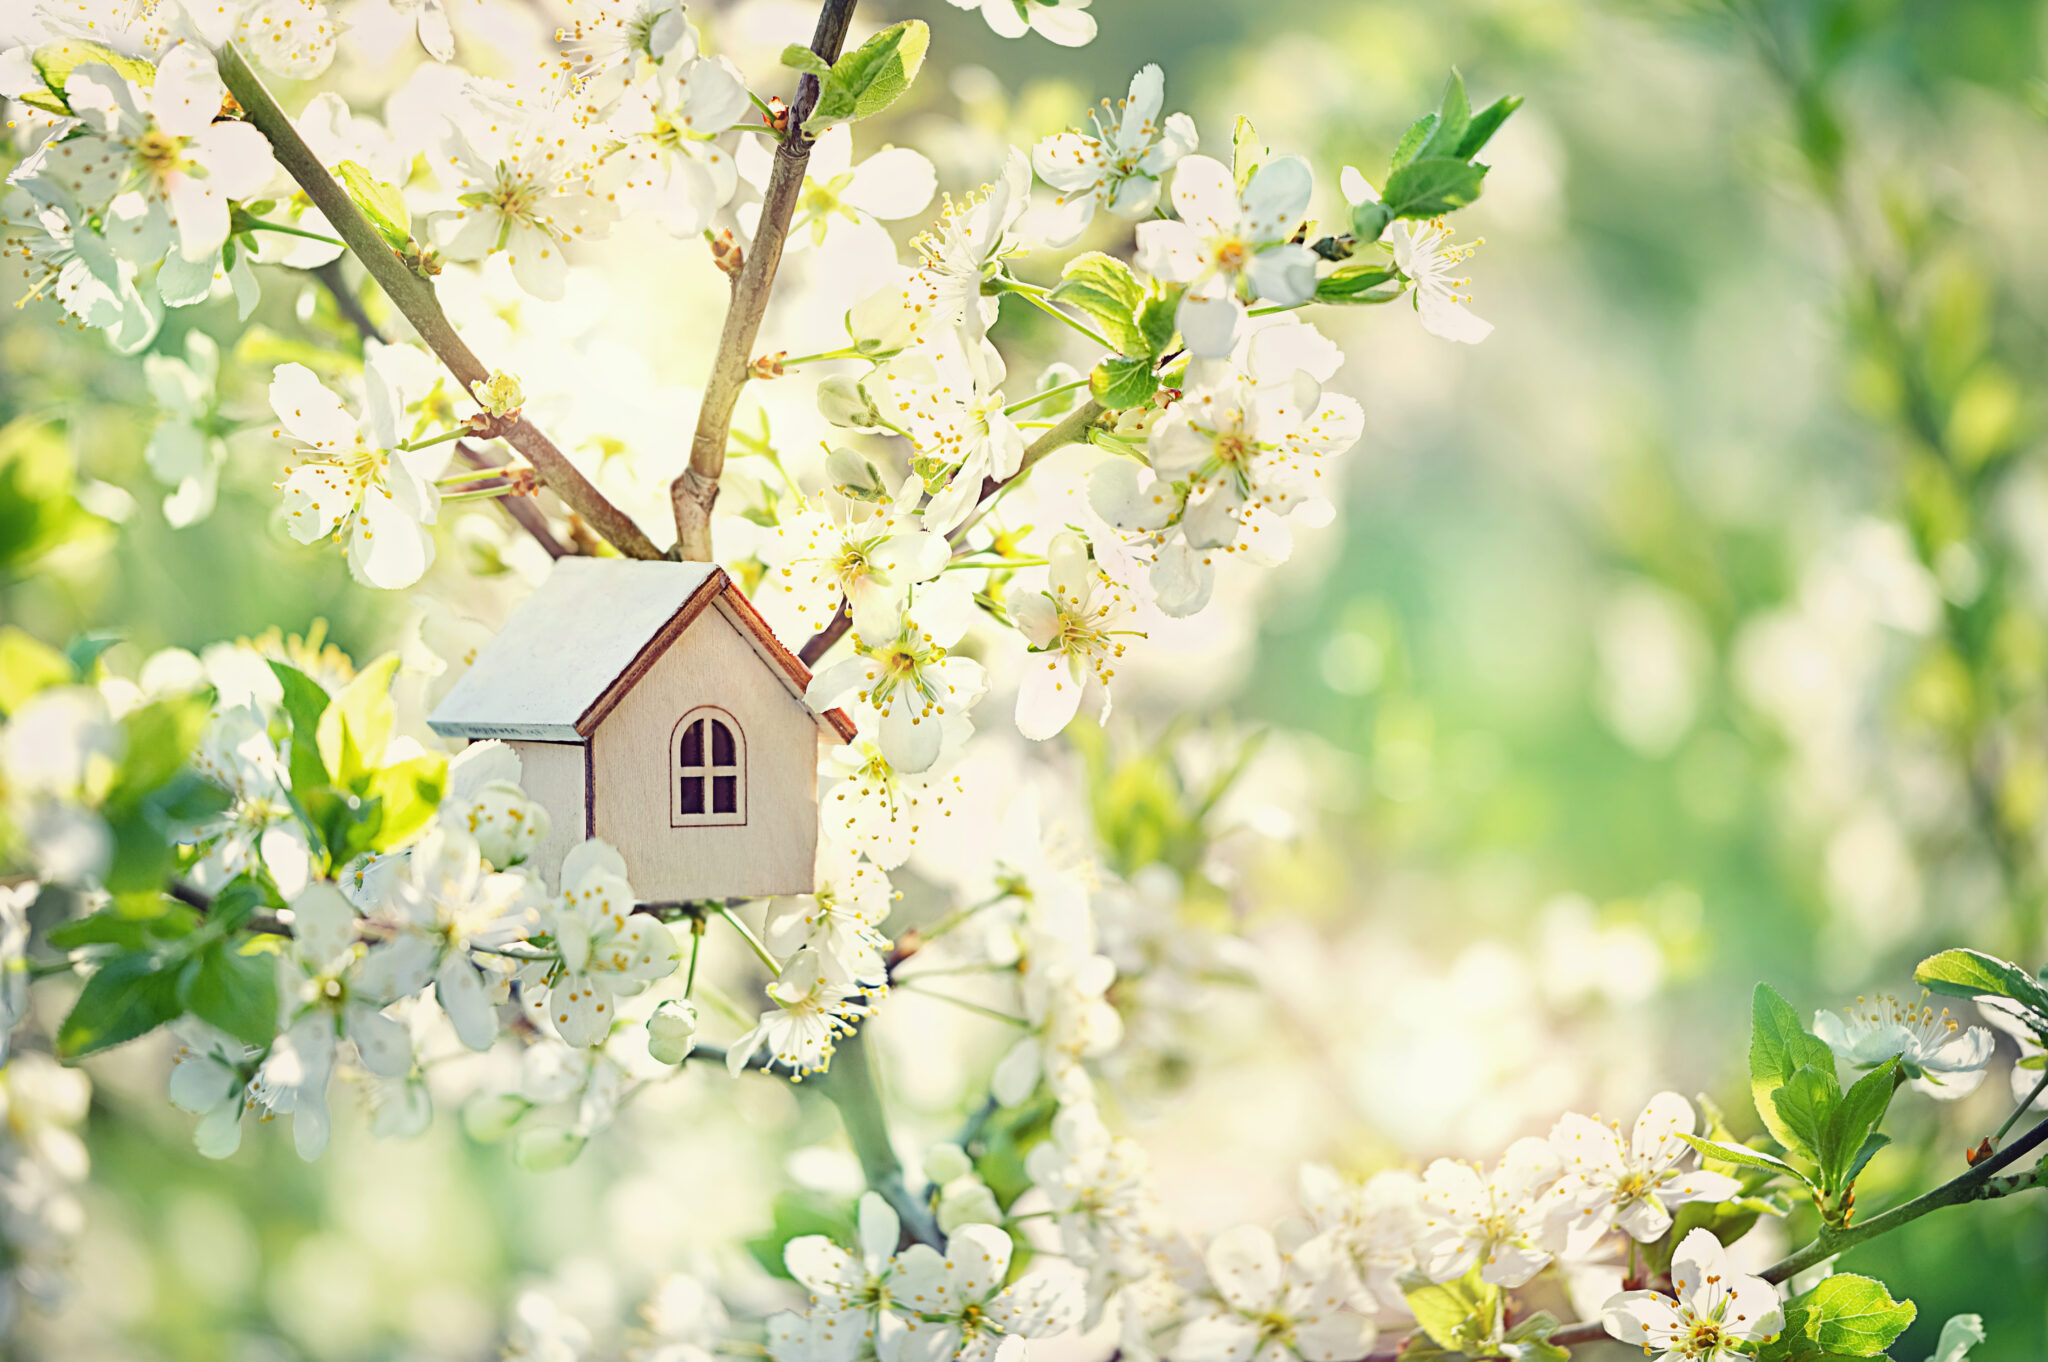 Toy,House,And,Cherry,Flowers.,Spring,Natural,Background.,Concept,Of